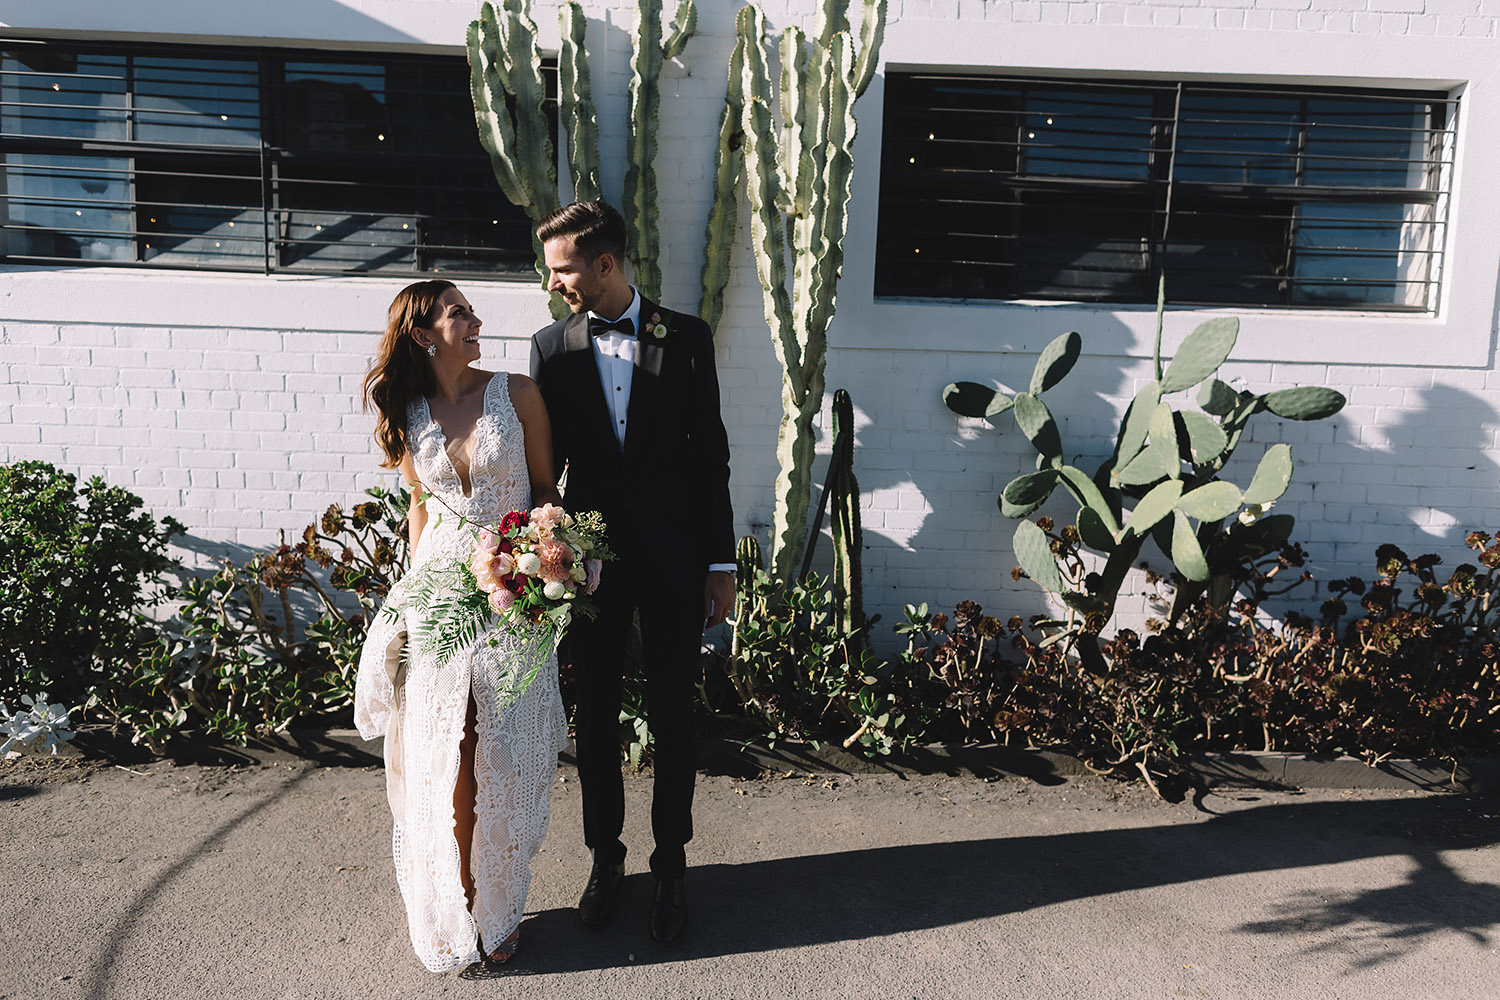 Warehouse wedding venue melbourne cactus garden